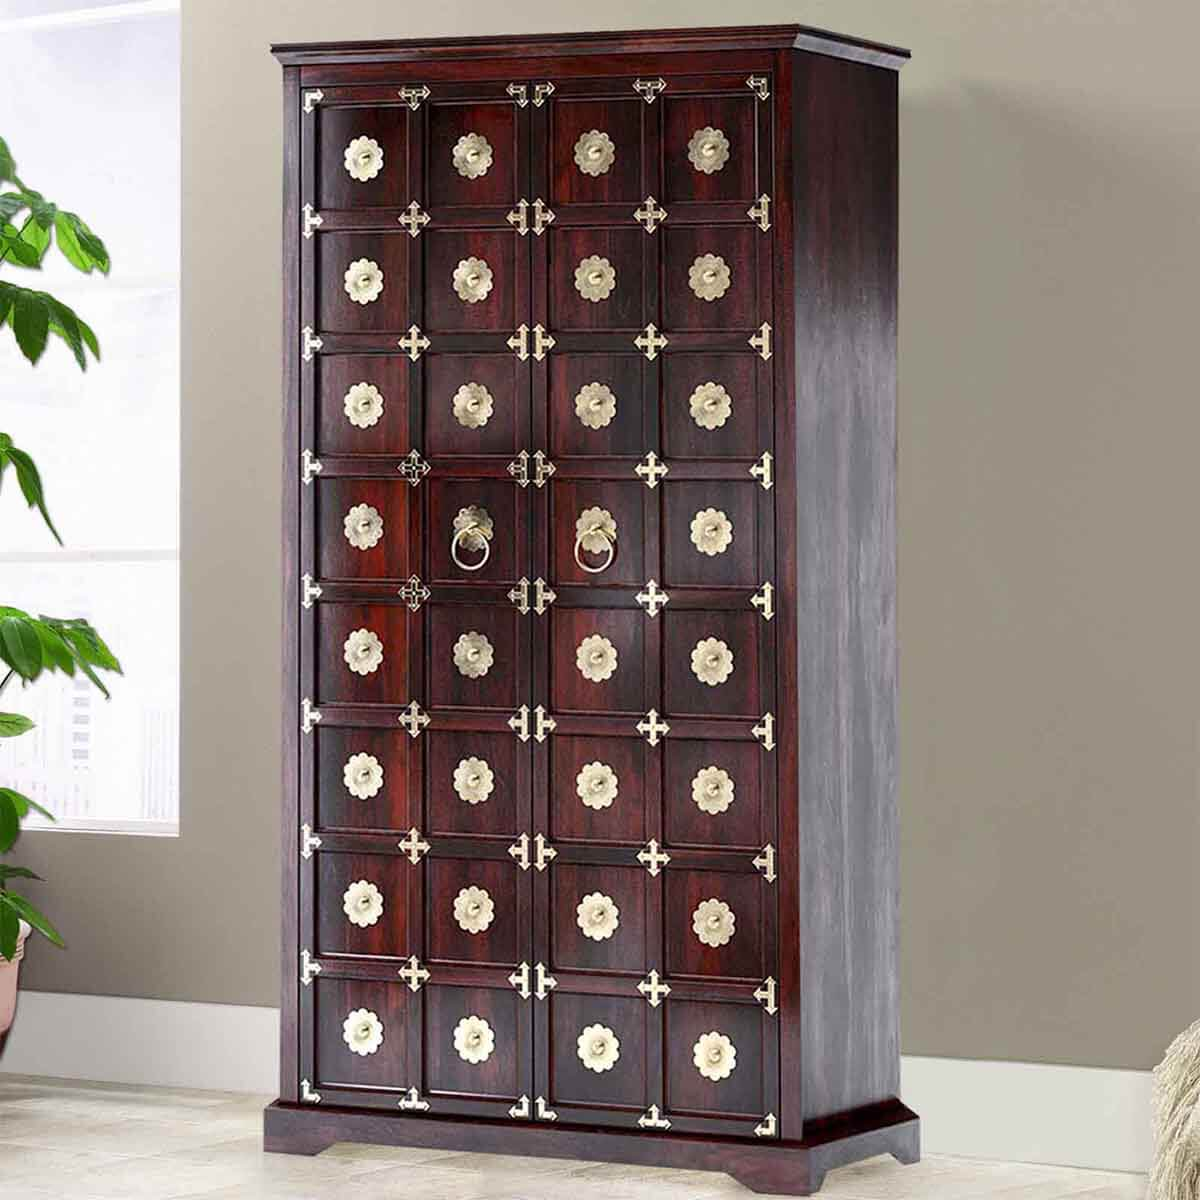 "Madison Indian Rosewood 80"" Wardrobe Armoire Cabinet"